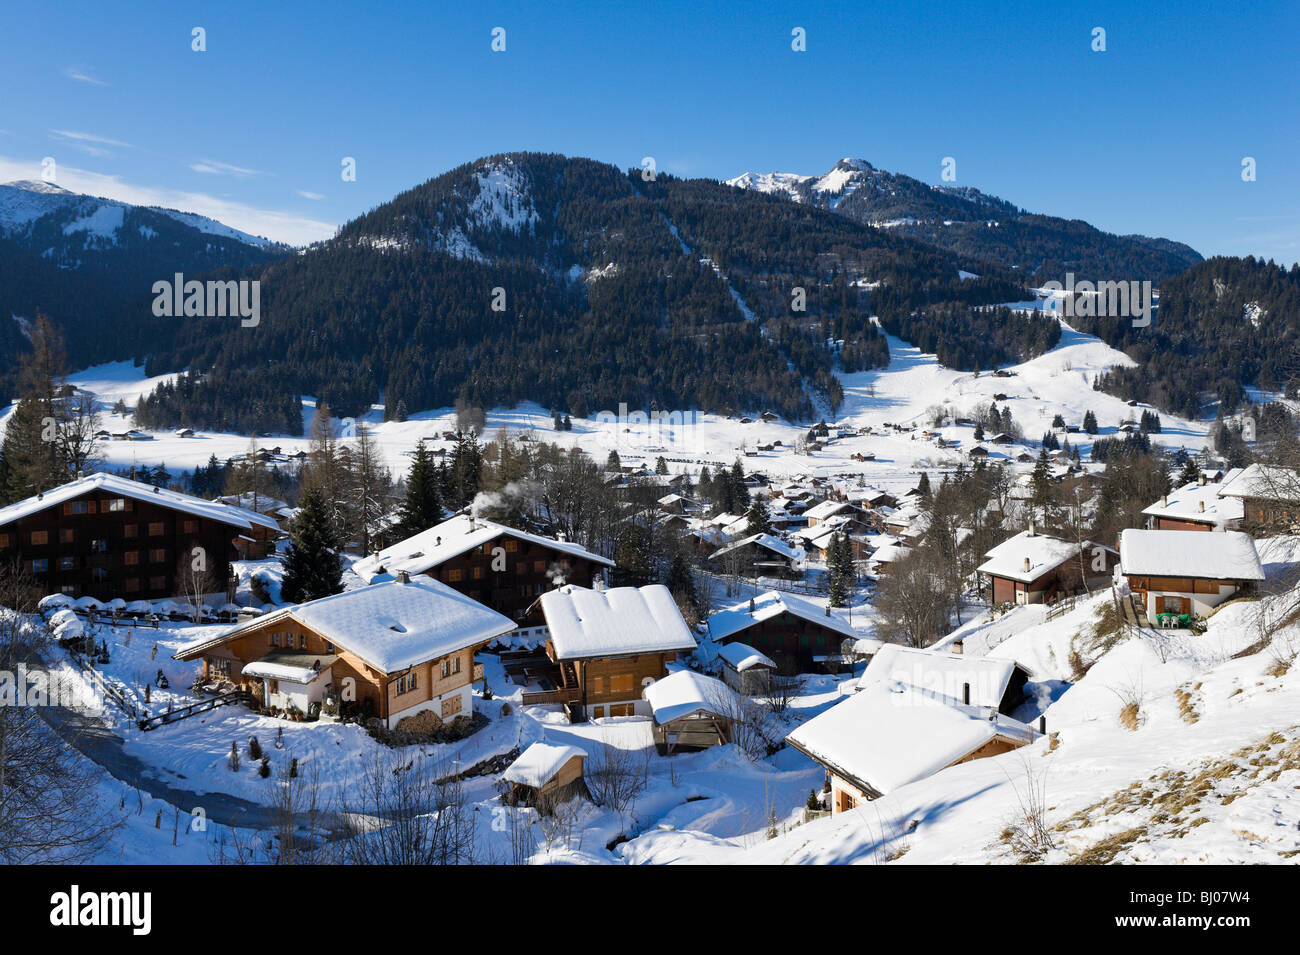 View over the centre of the resort of Les Diablerets, Vaud, Switzerland - Stock Image